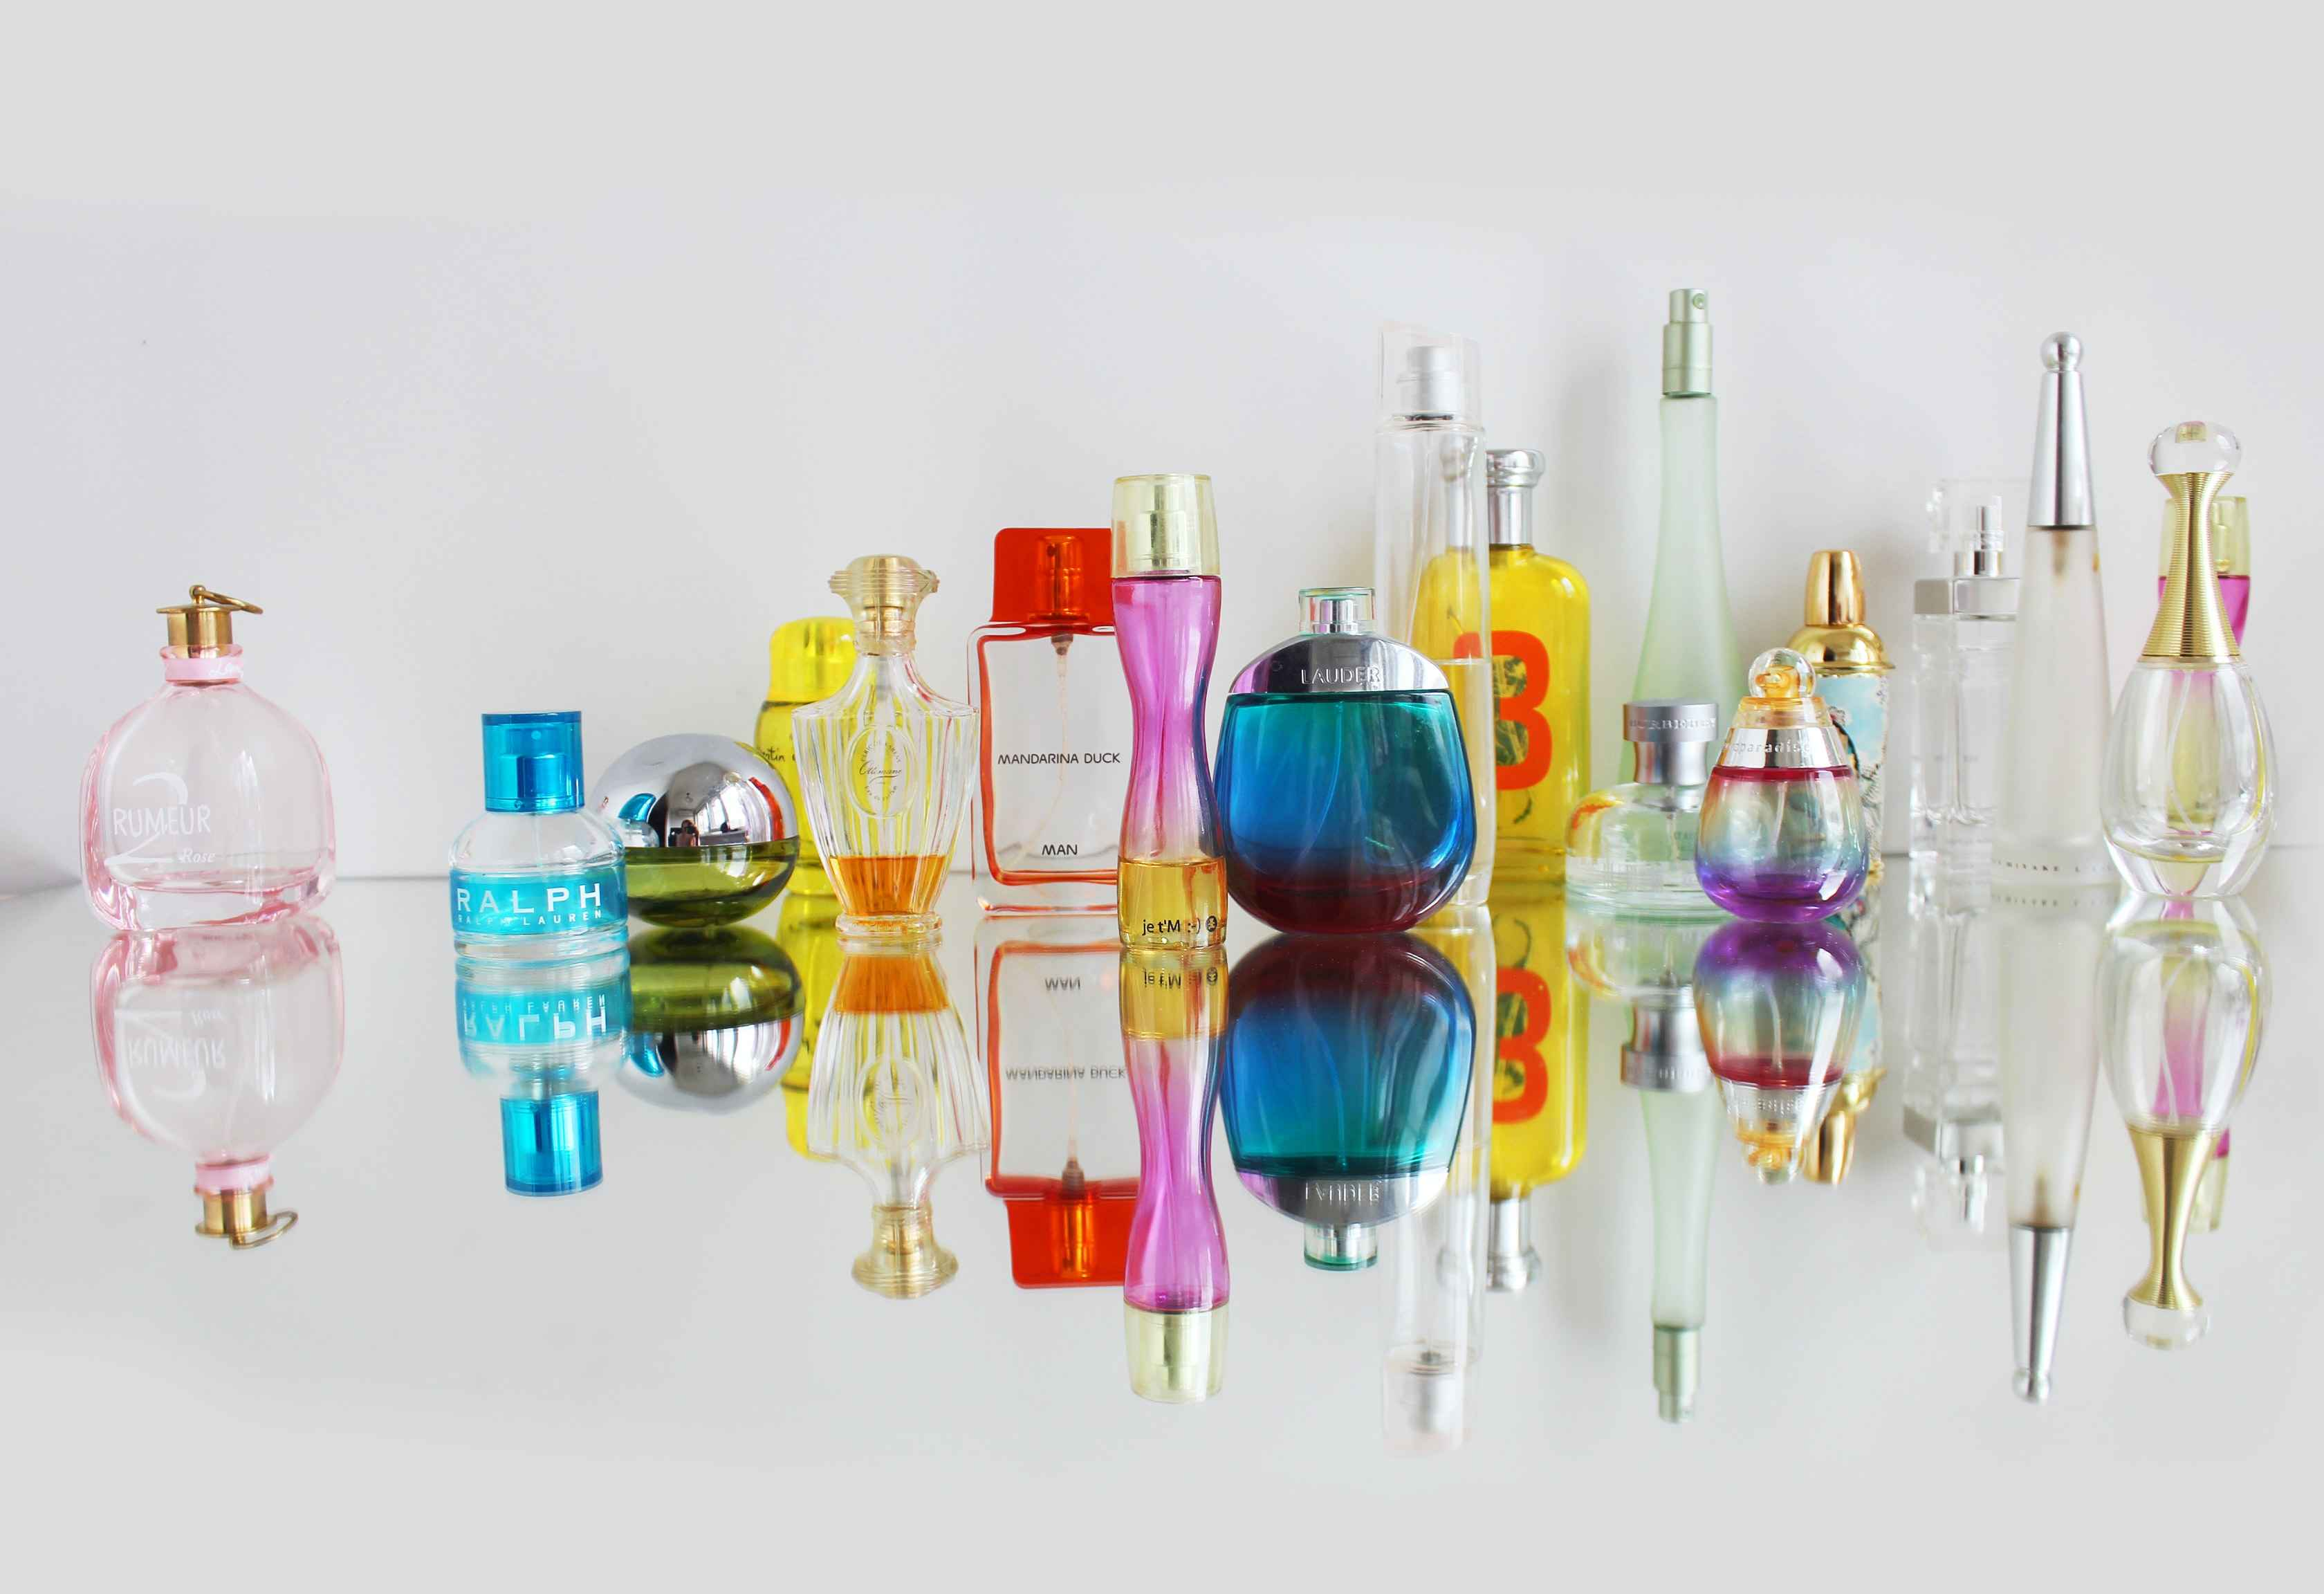 perfumes-designer-fragrances